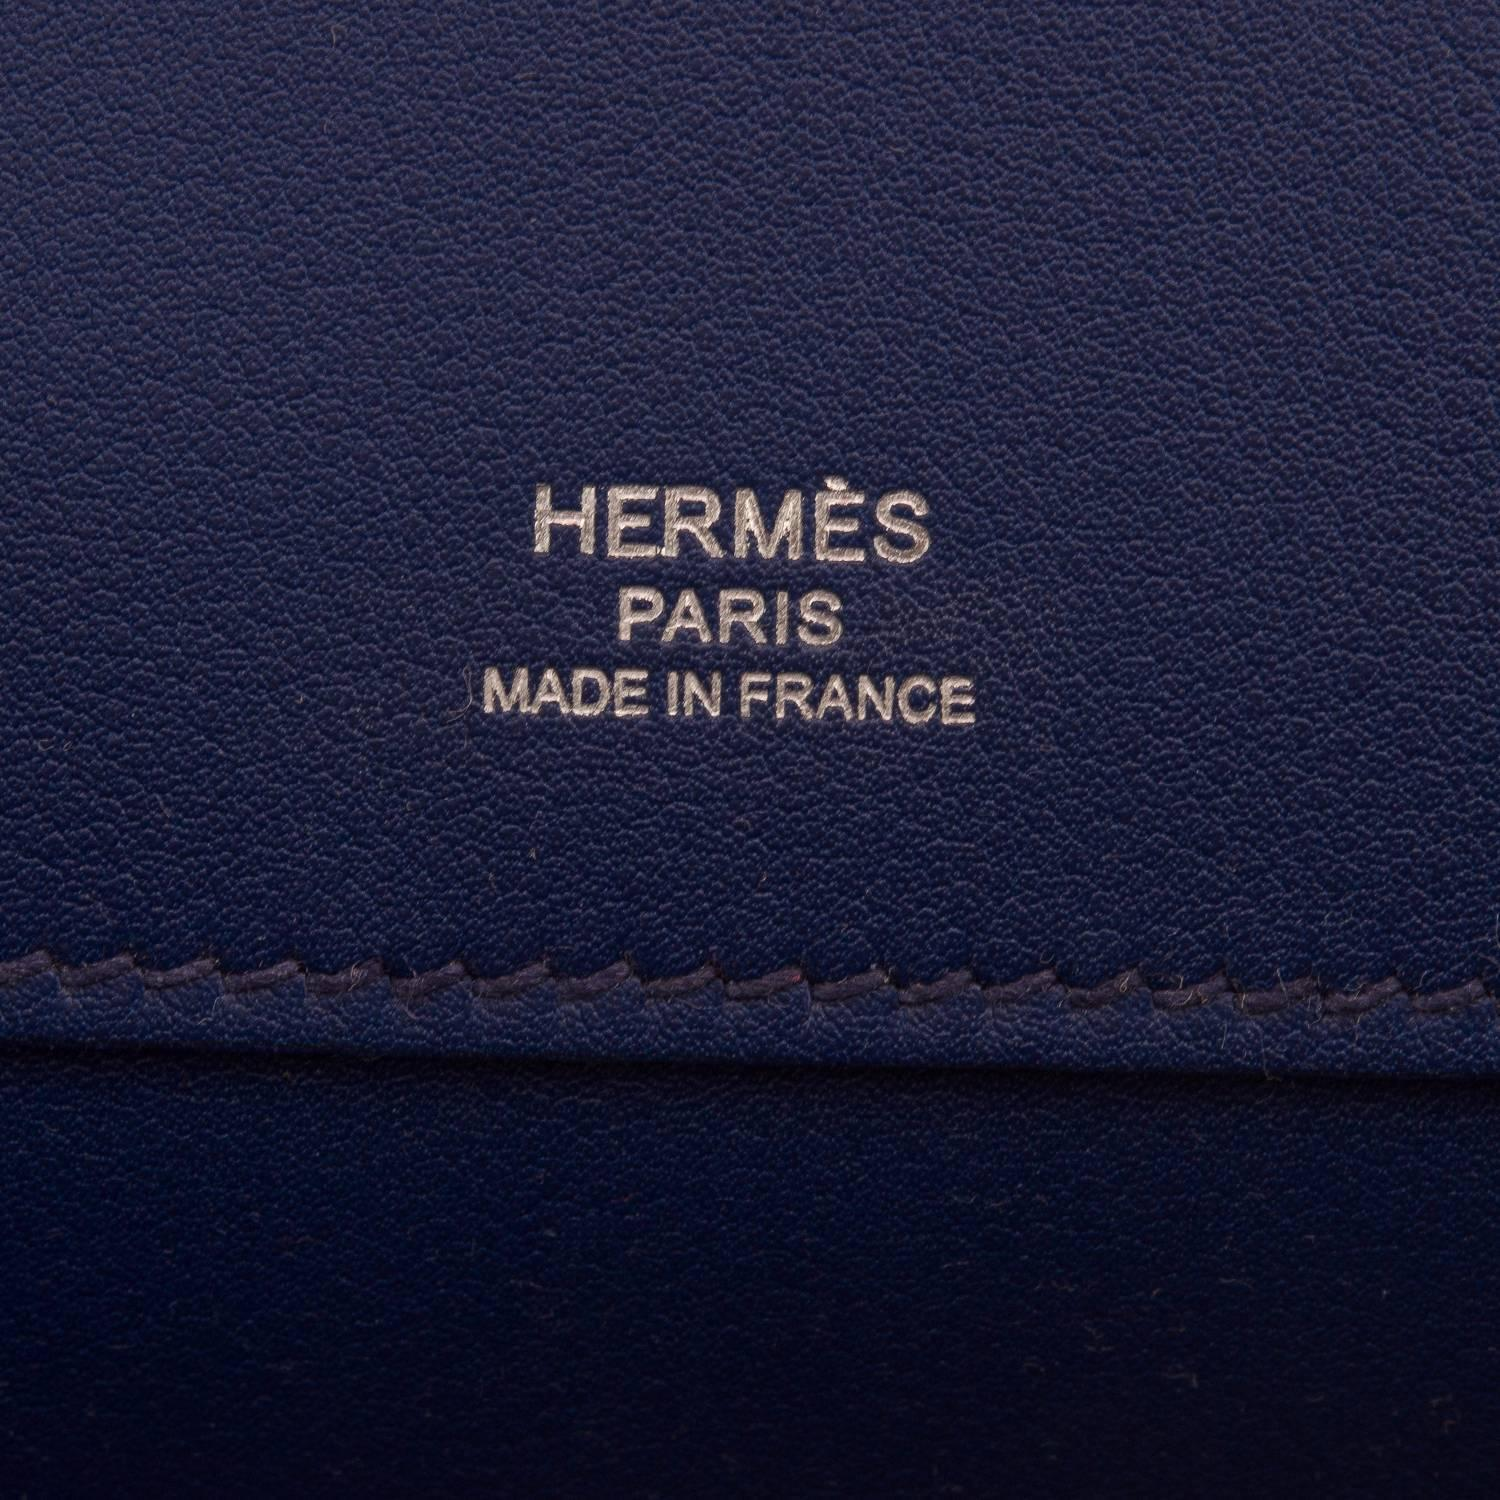 replica hermes - Hermes Blue Sapphire Leather Kelly Cut For Sale at 1stdibs